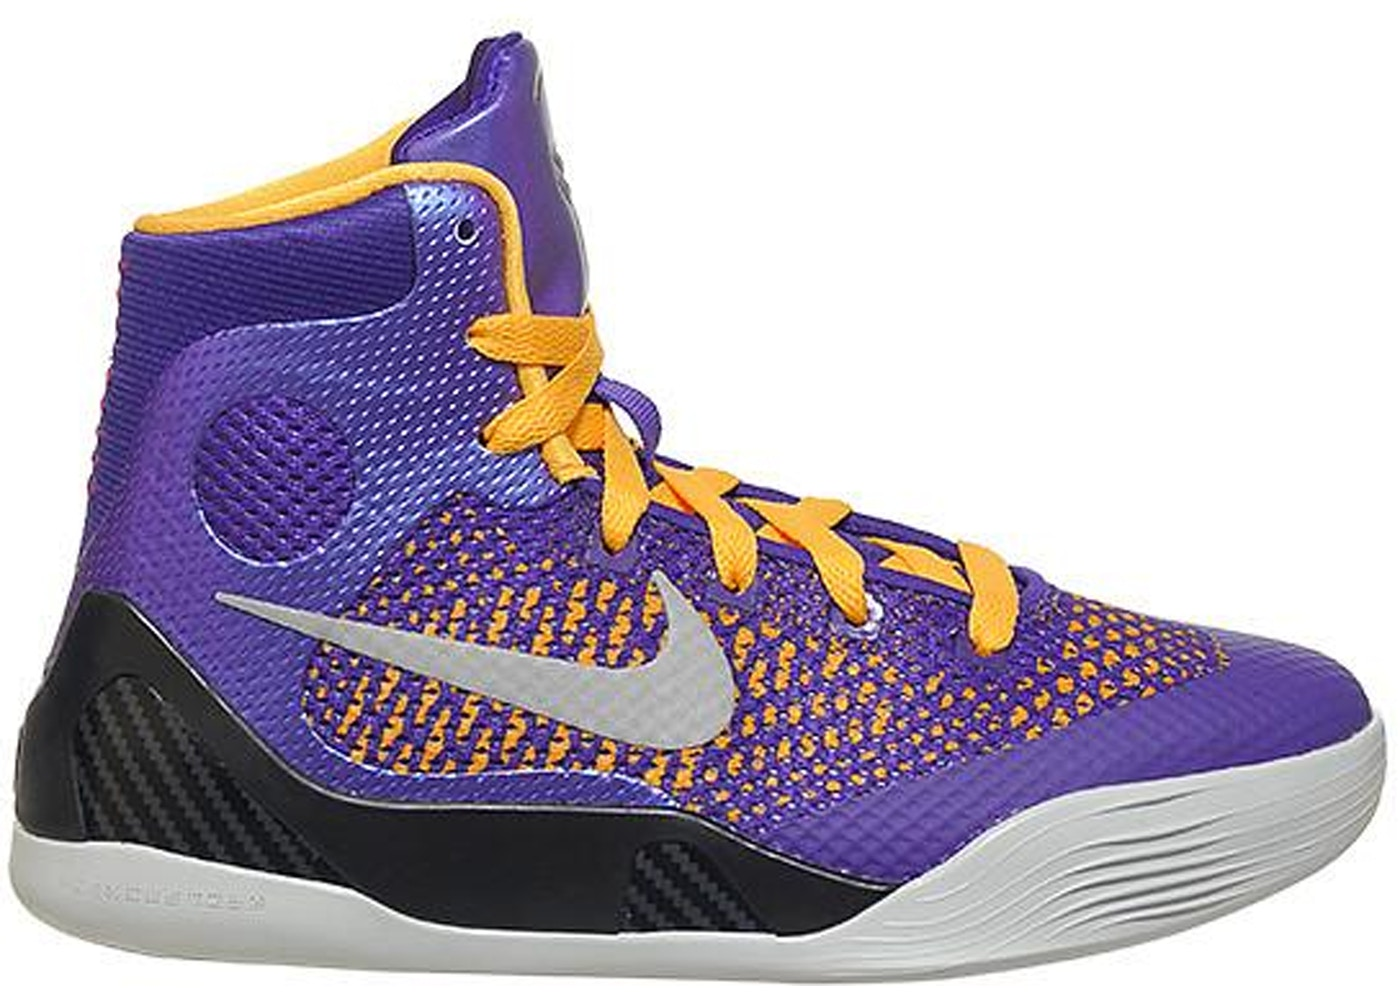 ba3ef90ee788 Kobe 9 Elite Lakers (GS) - 636602-501